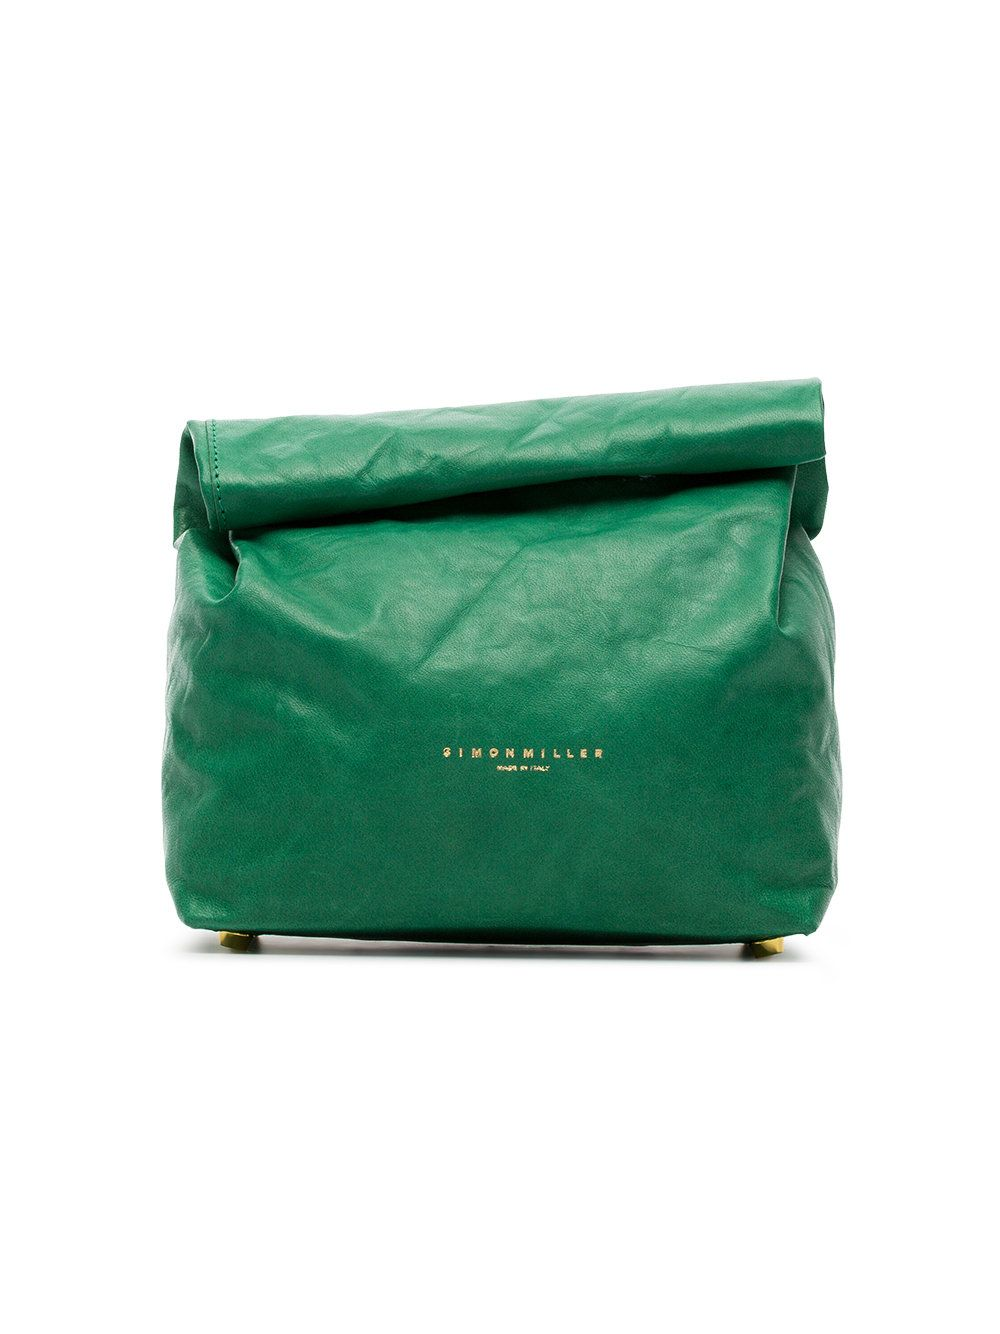 Fast Shipping Simon Miller green Lunchbox 20 leather clutch Buy Cheap Original Original For Sale nvfHV